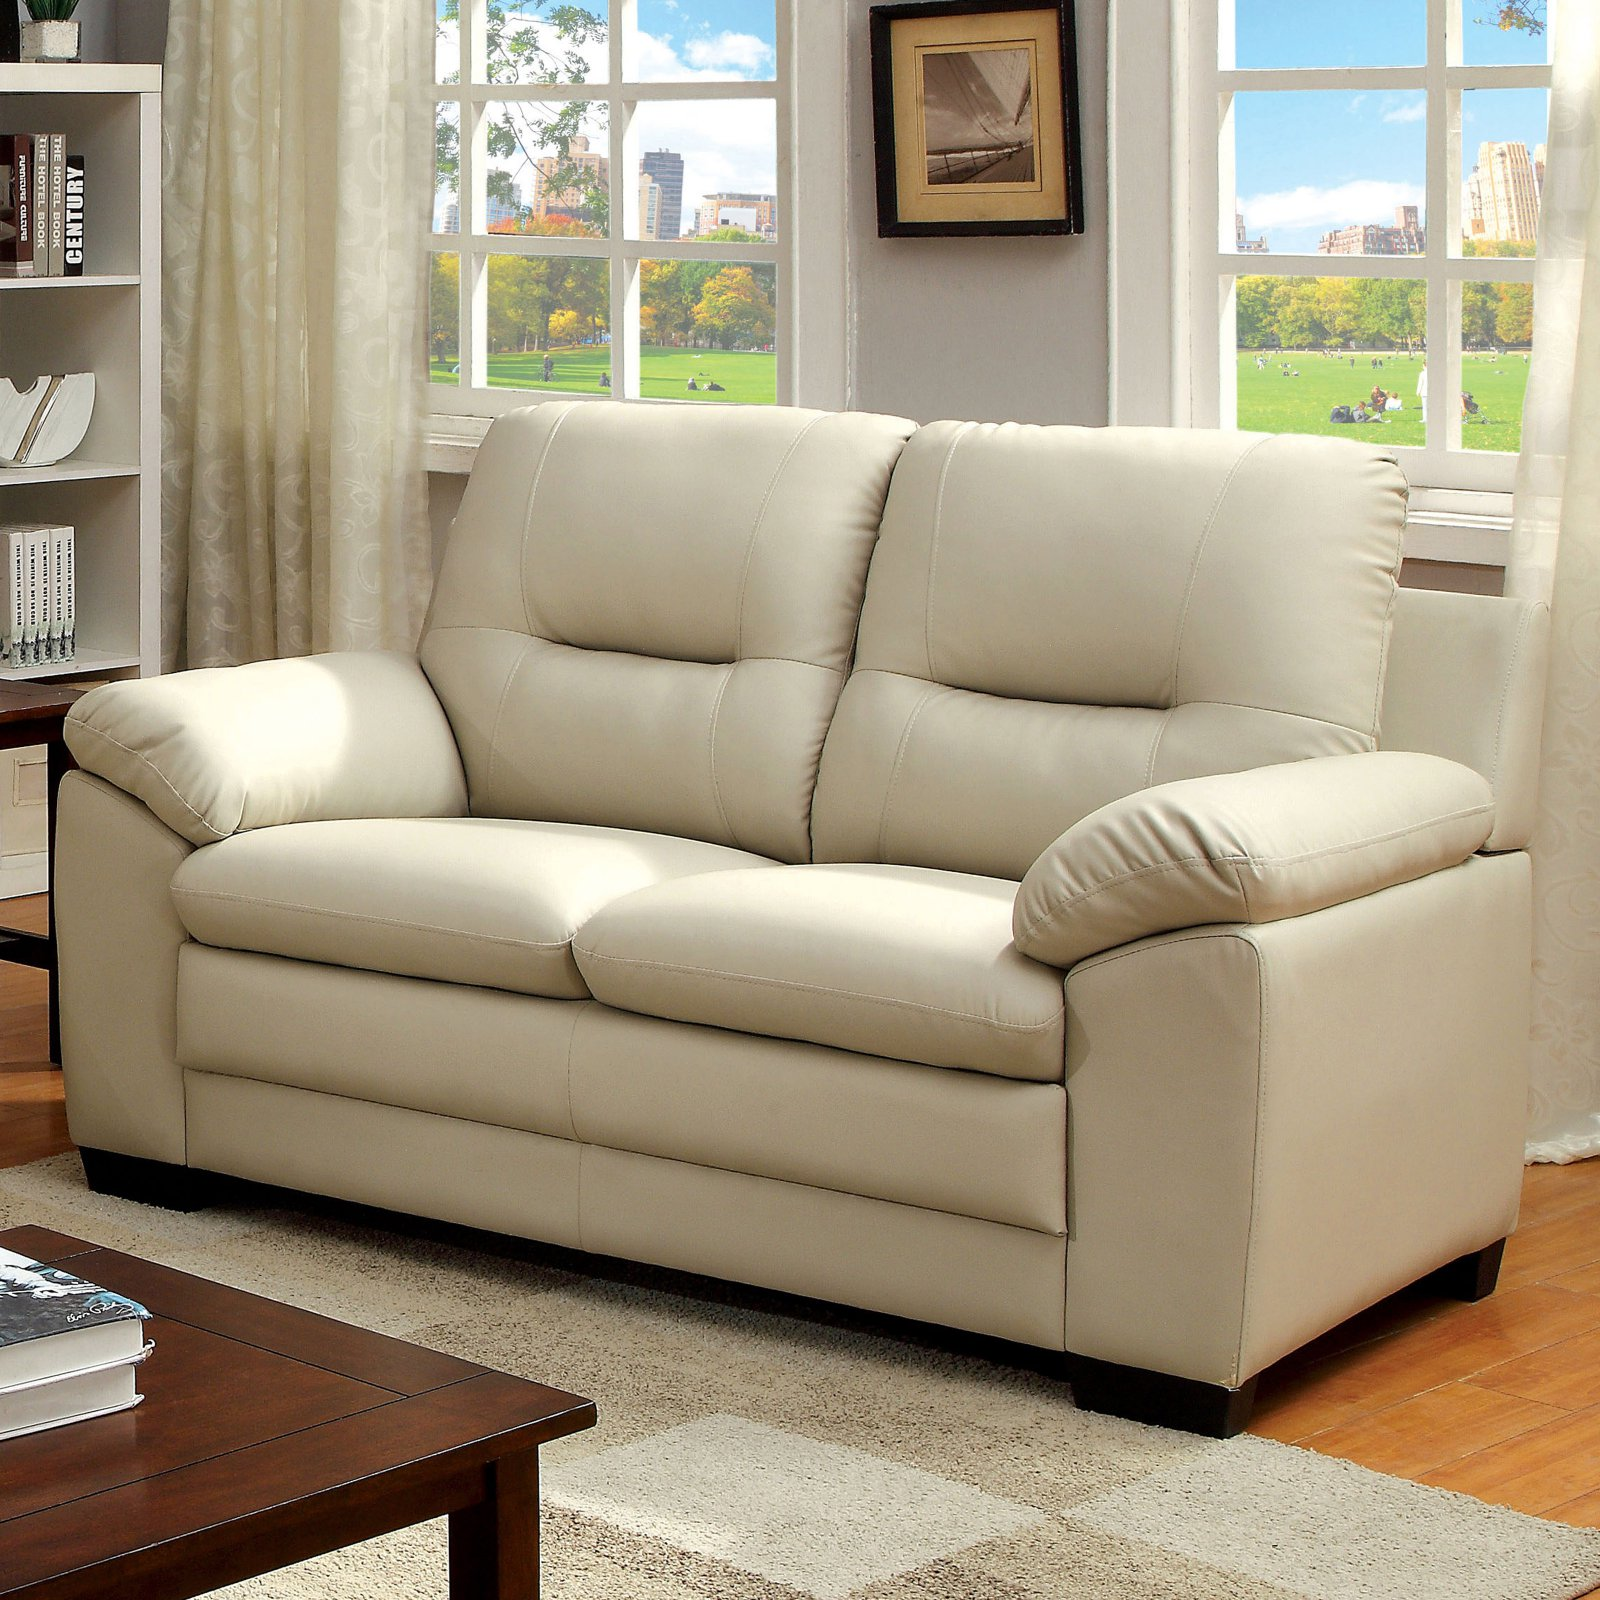 Furniture of America Milo Deep Tufted Loveseat